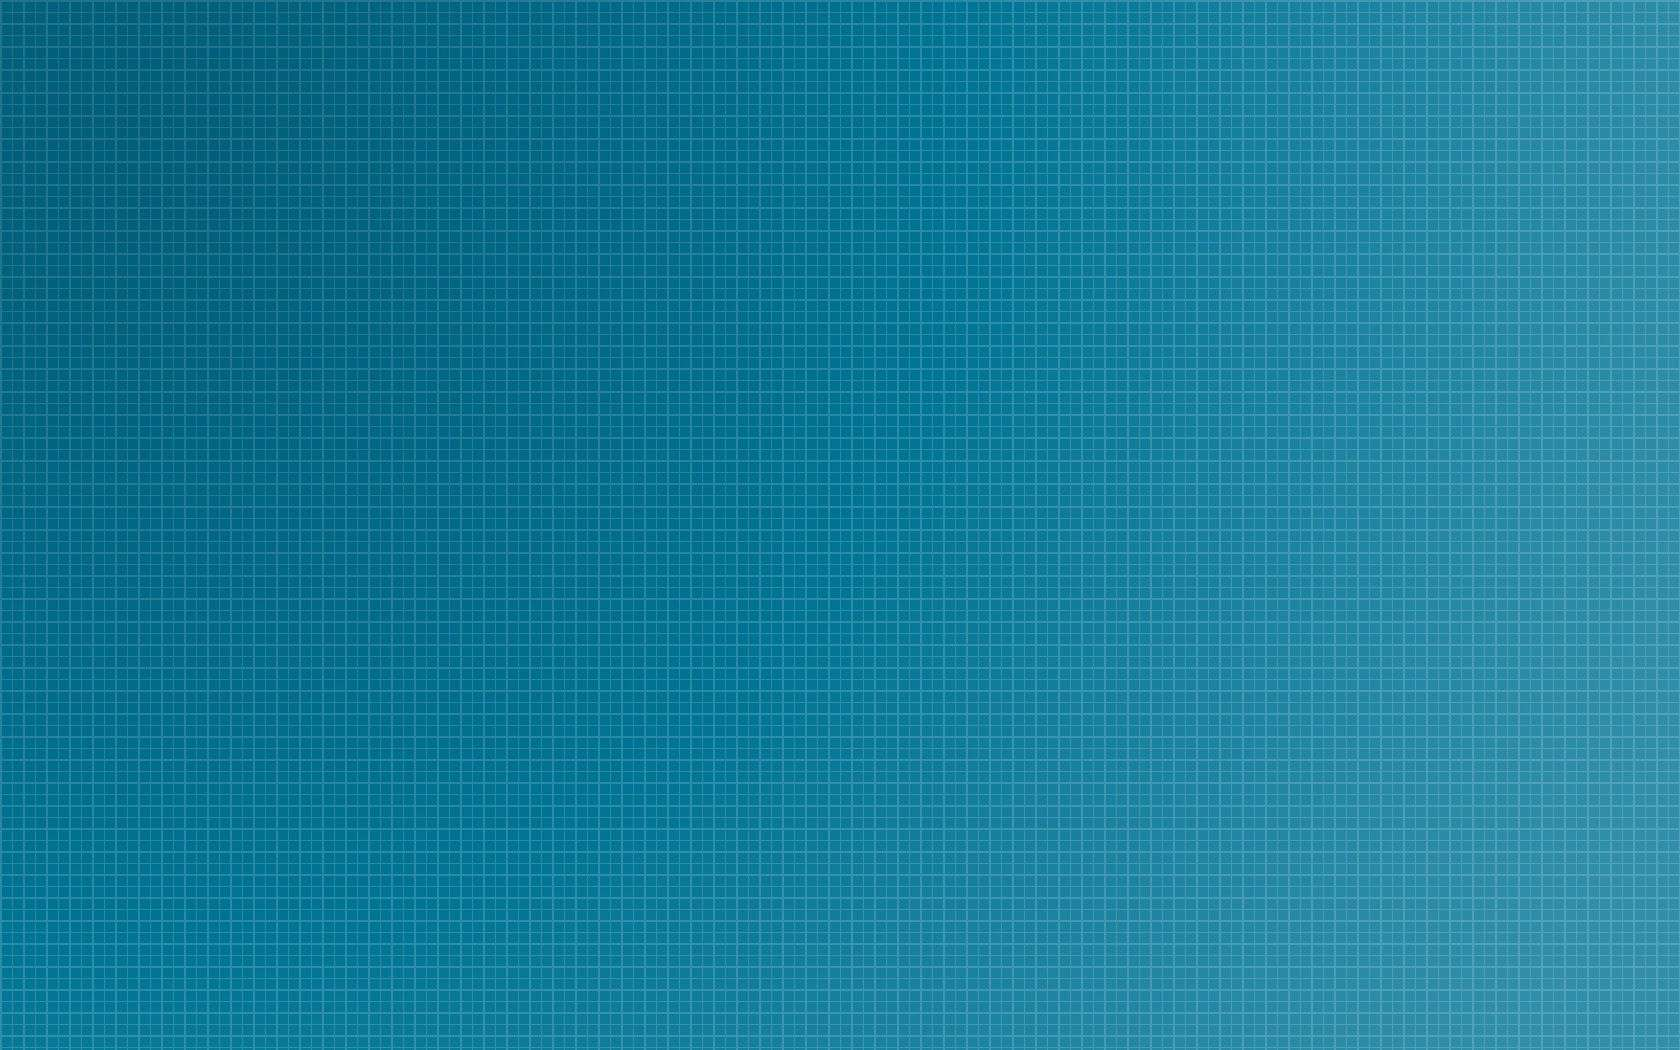 Pattern Wallpaper 021